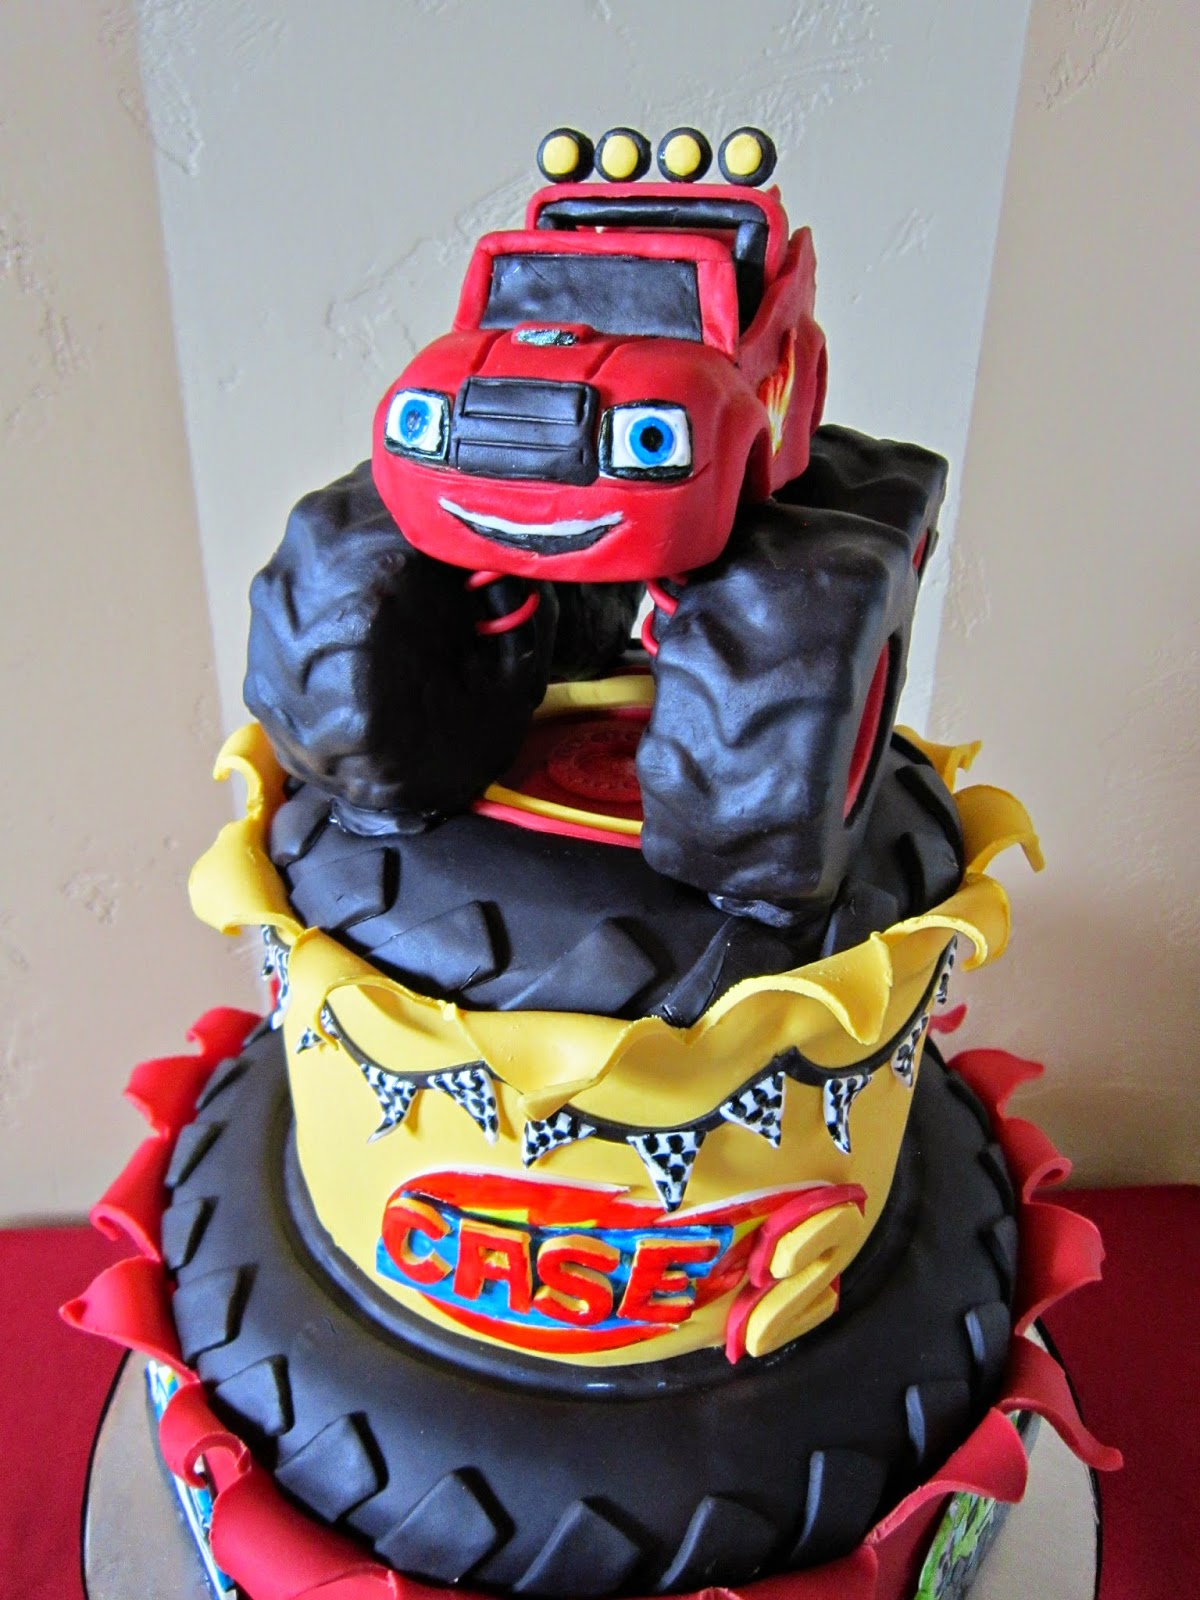 Blaze and Monster Machine Birthday Cake